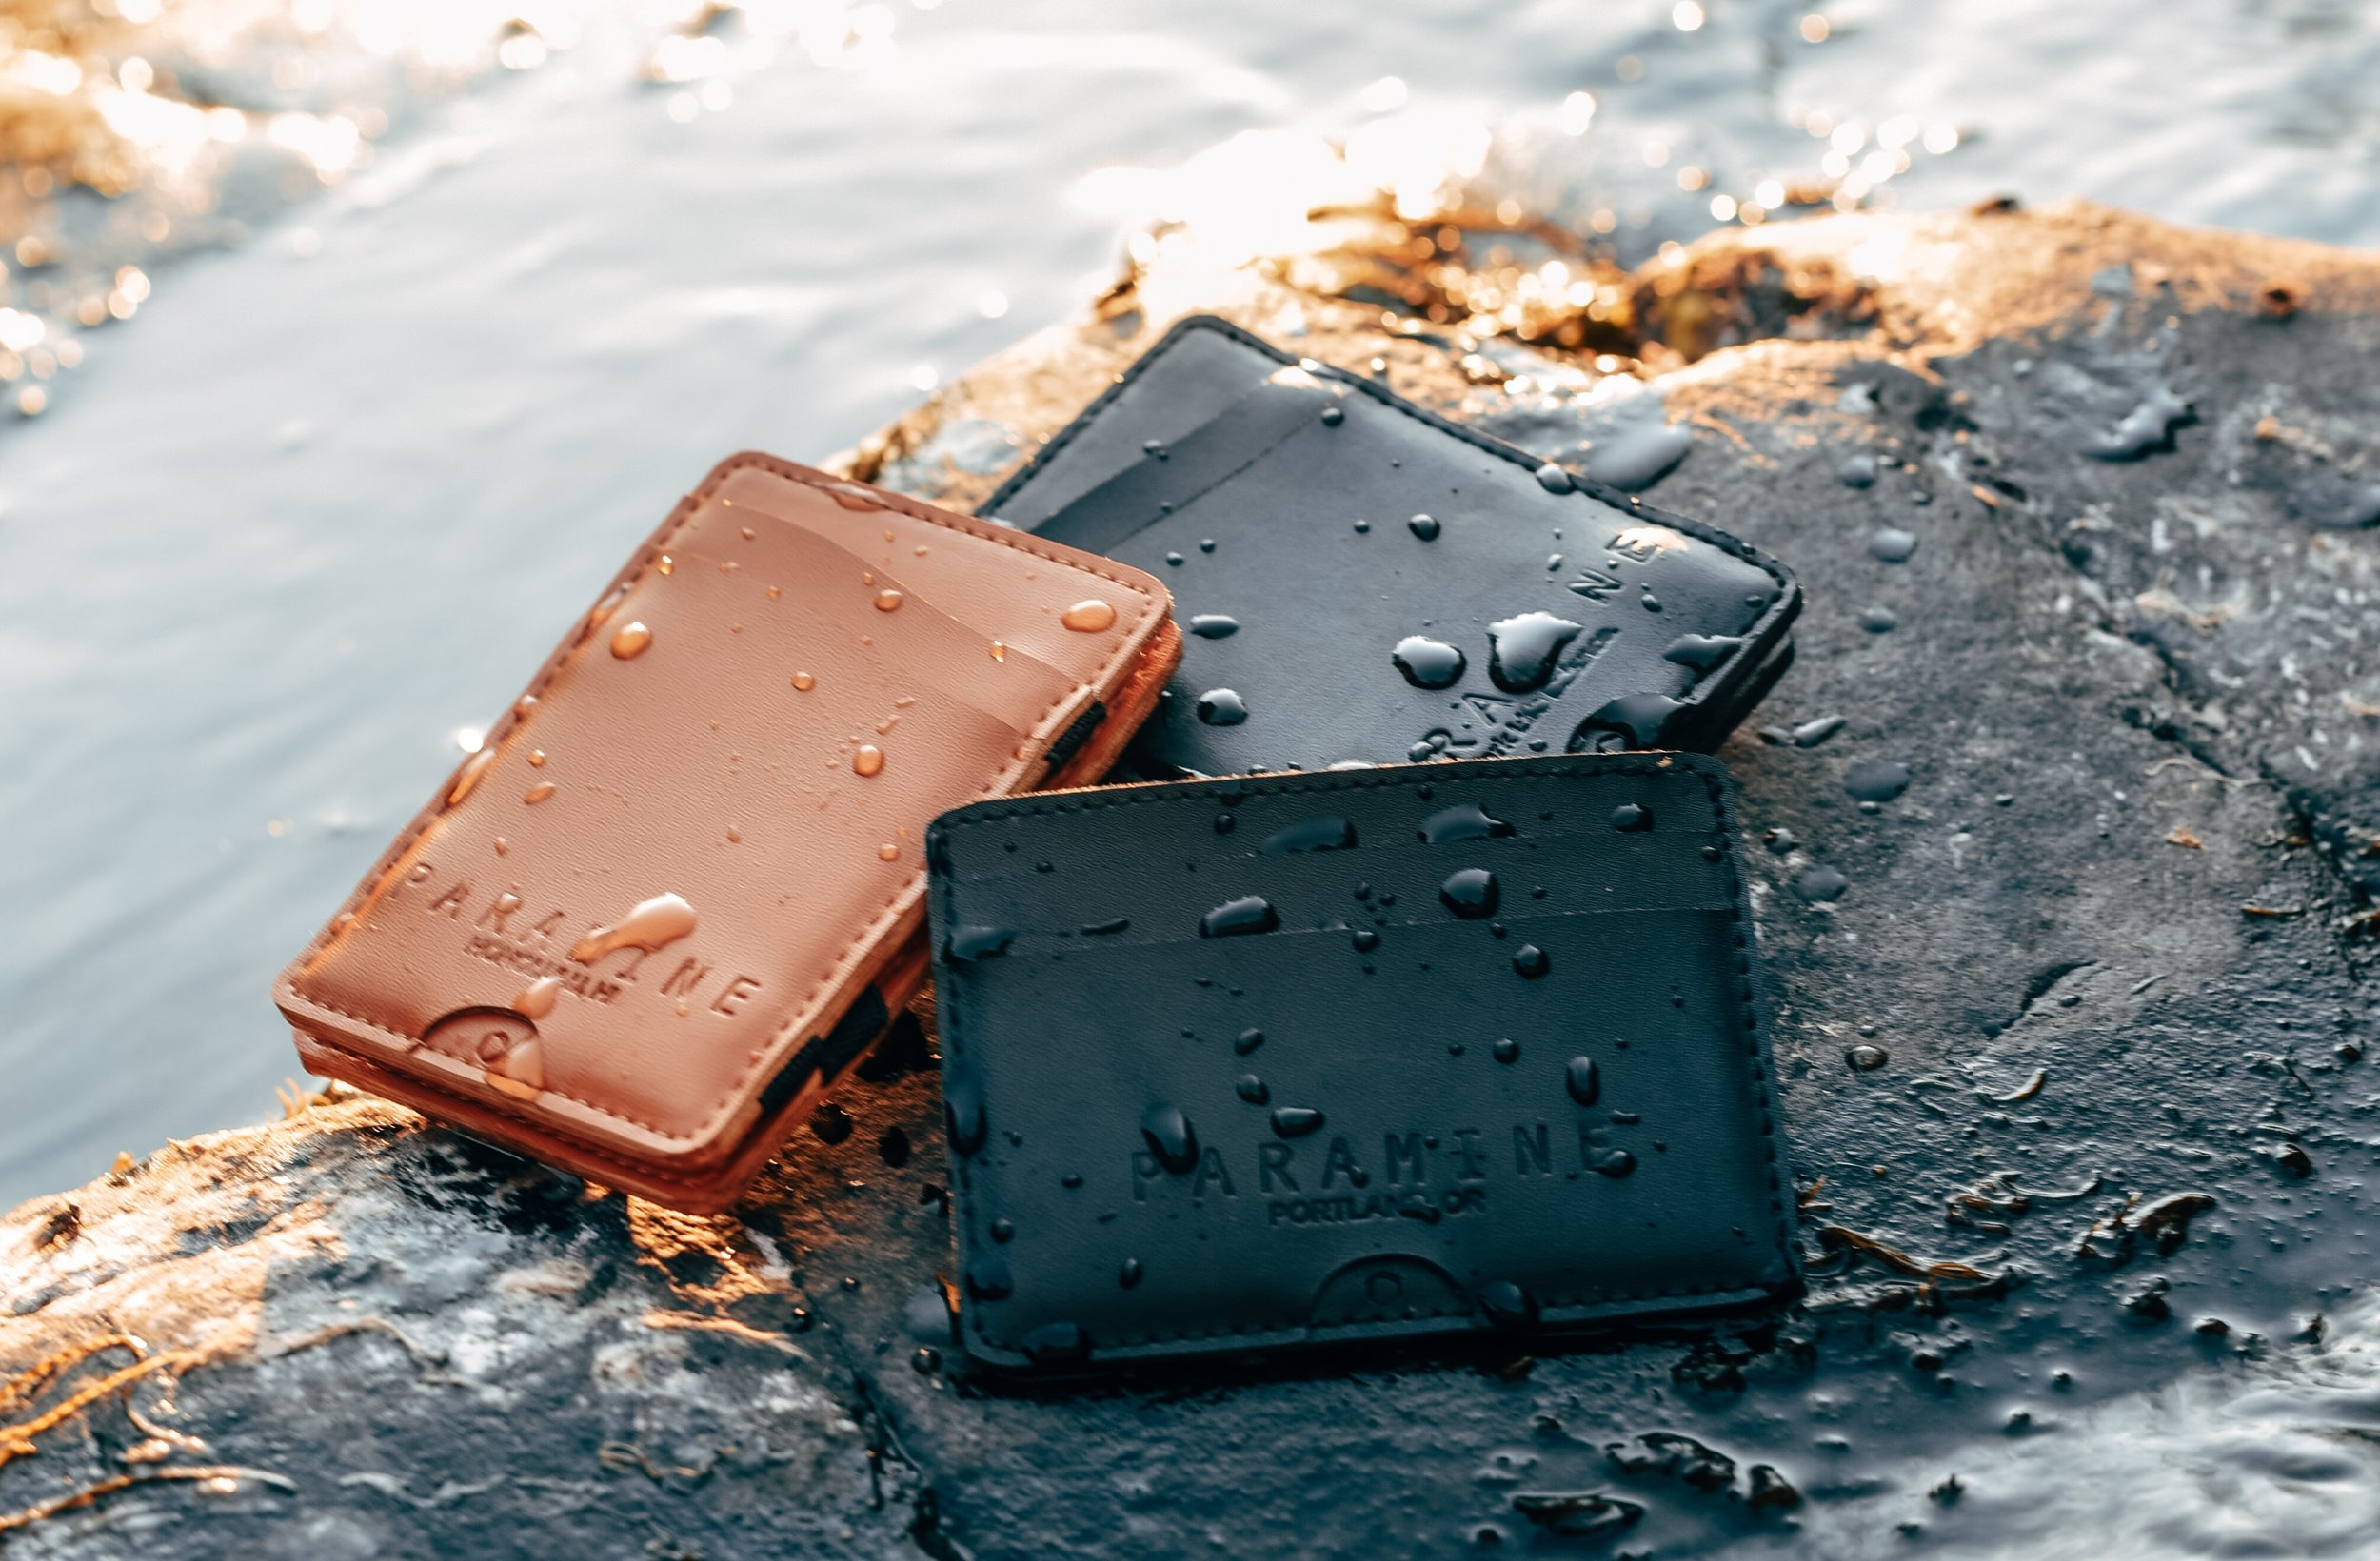 Weather Resistant Exterior - Water resistant material that uses a carefully modified leather by adding a nano polyurethane cover for durability wherever or whenever.